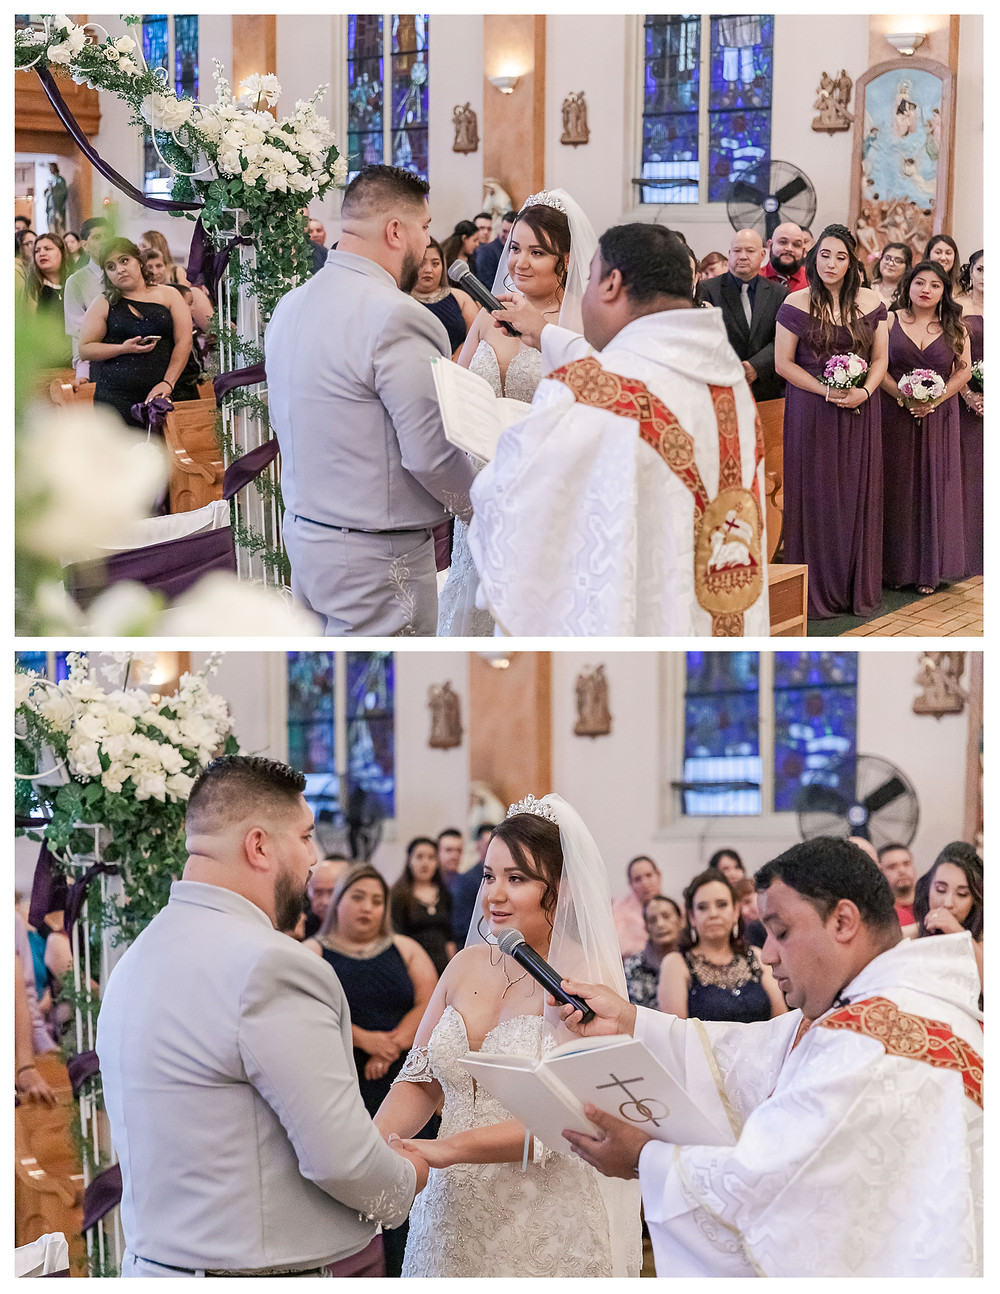 traditional mexican wedding photographer in chicago charro outfit cathedral veil with blusher perfect chicago wedding joliet photogrpaher